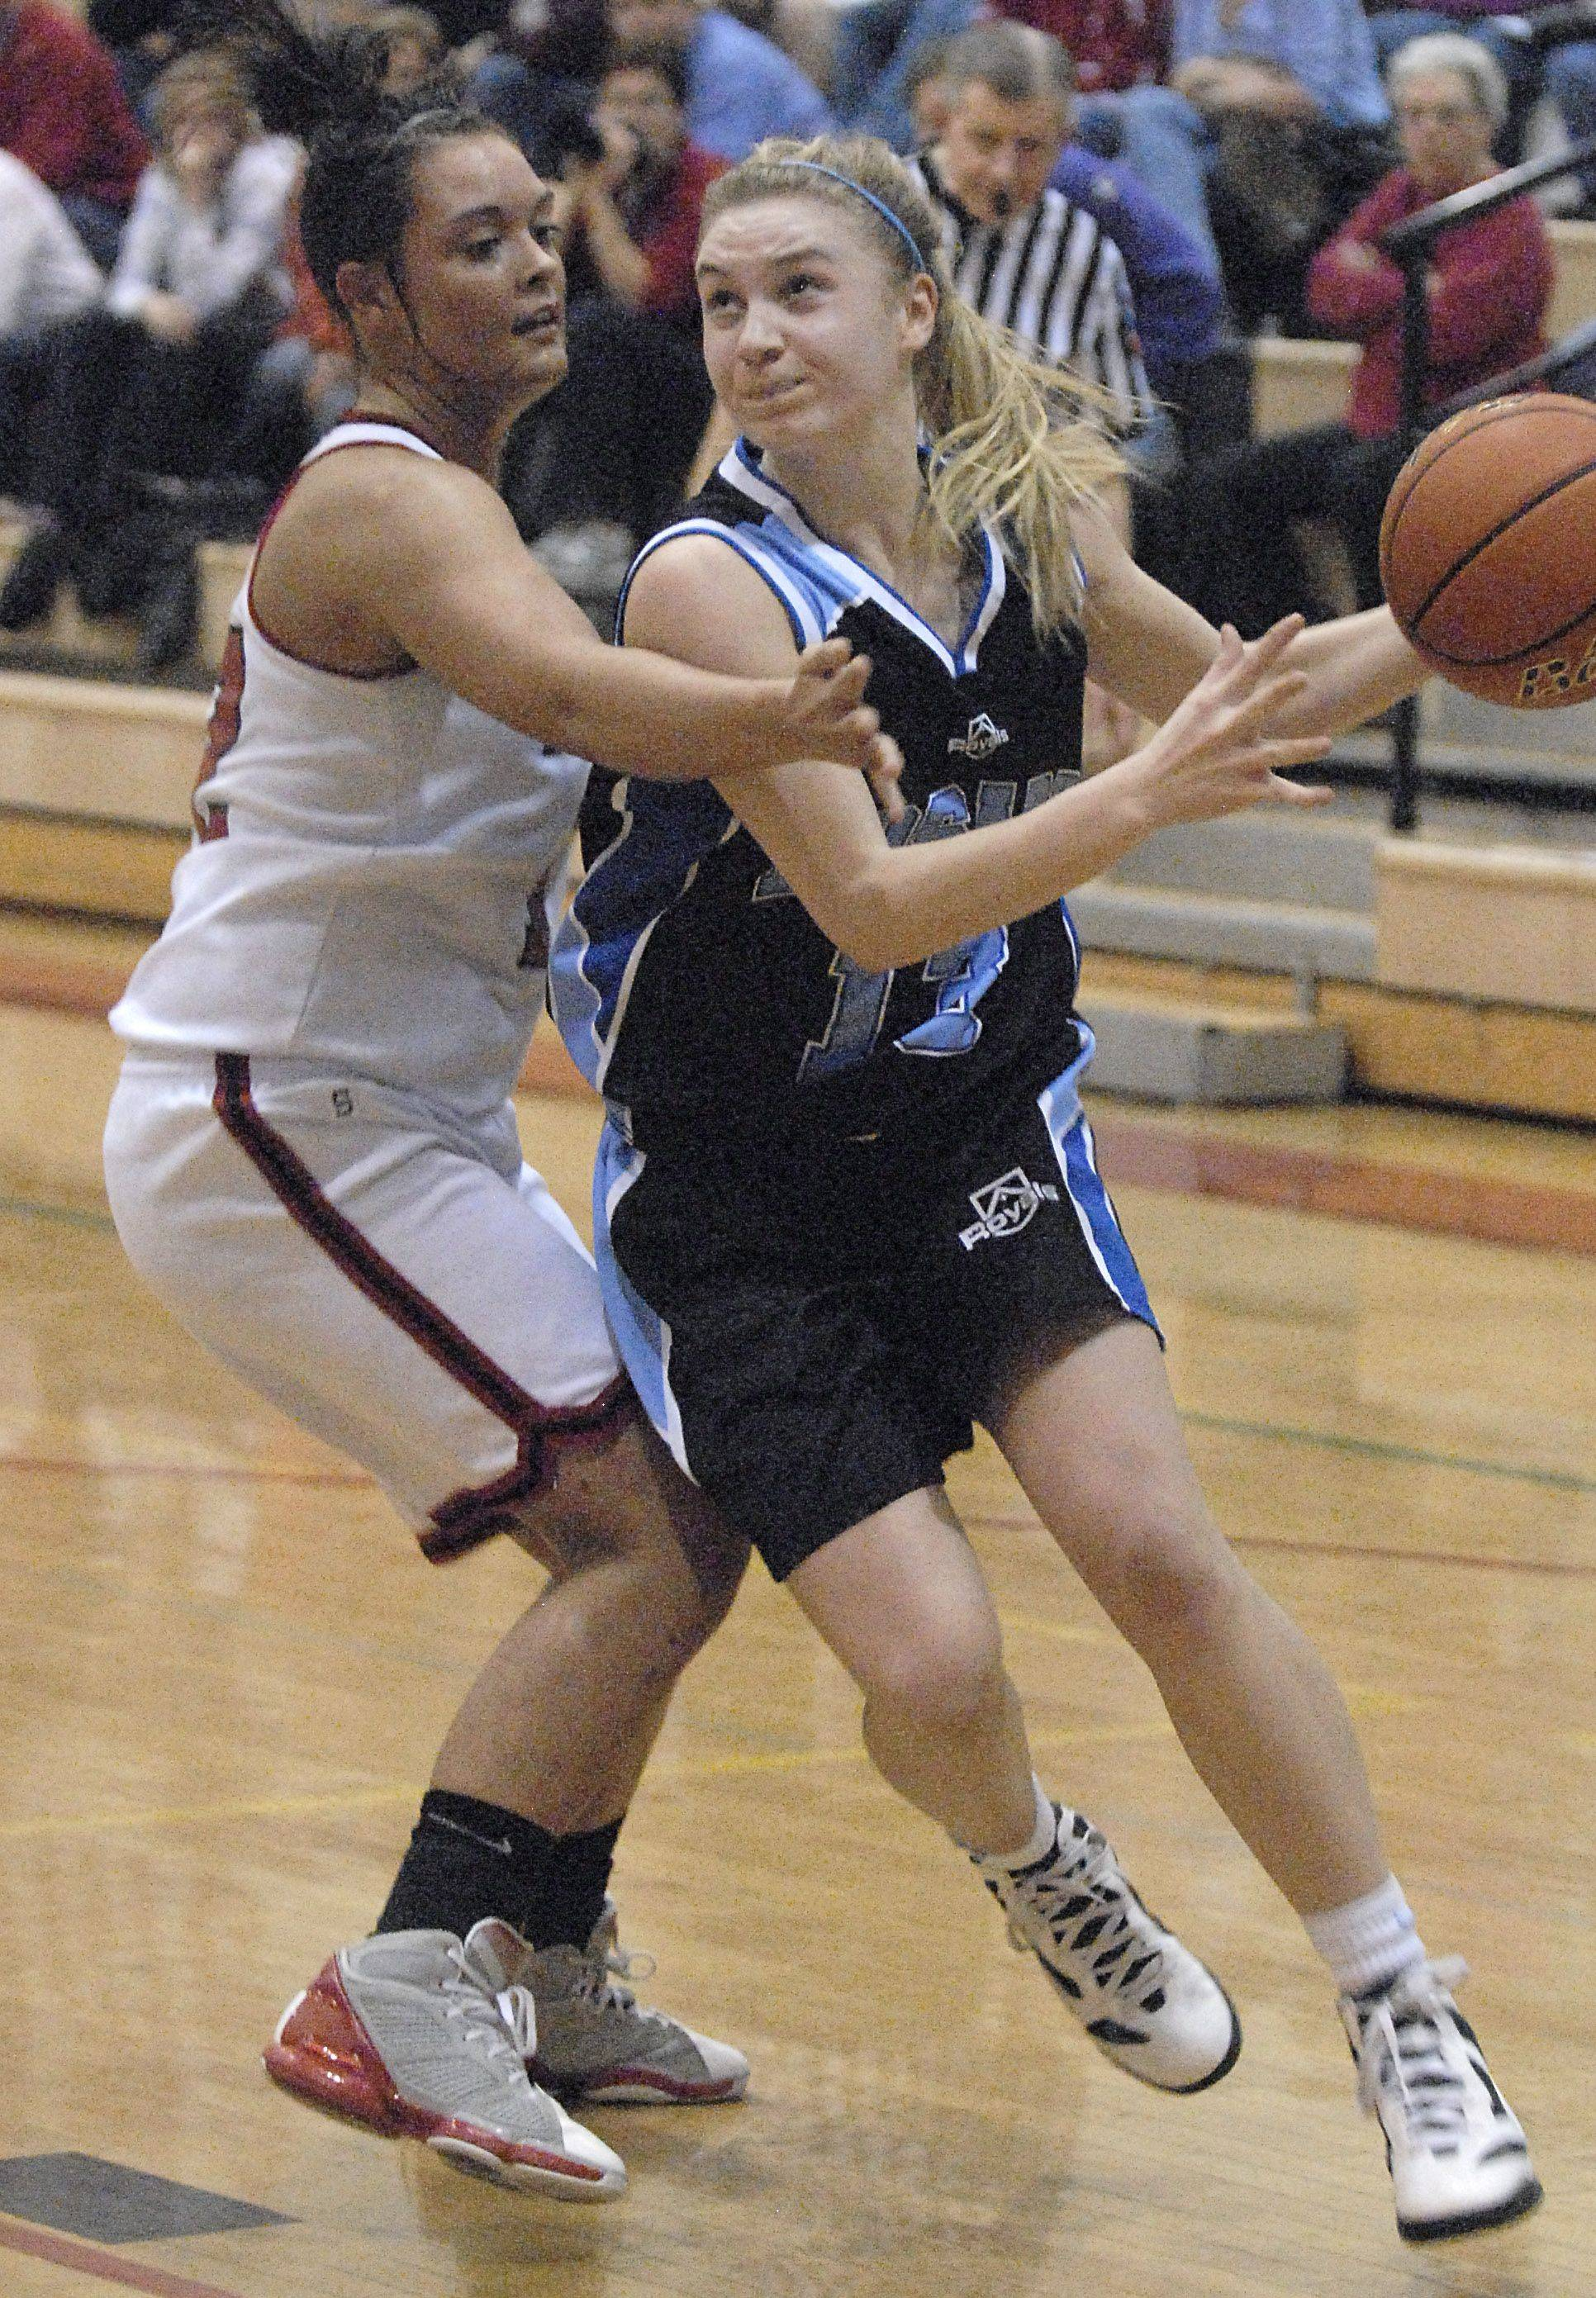 Laura Stoecker/lstoecker@dailyherald.comRosary's Karly Tate circles around a block by Yorkville's Paige Beach in the second quarter of regional game on Wednesday, February 15.